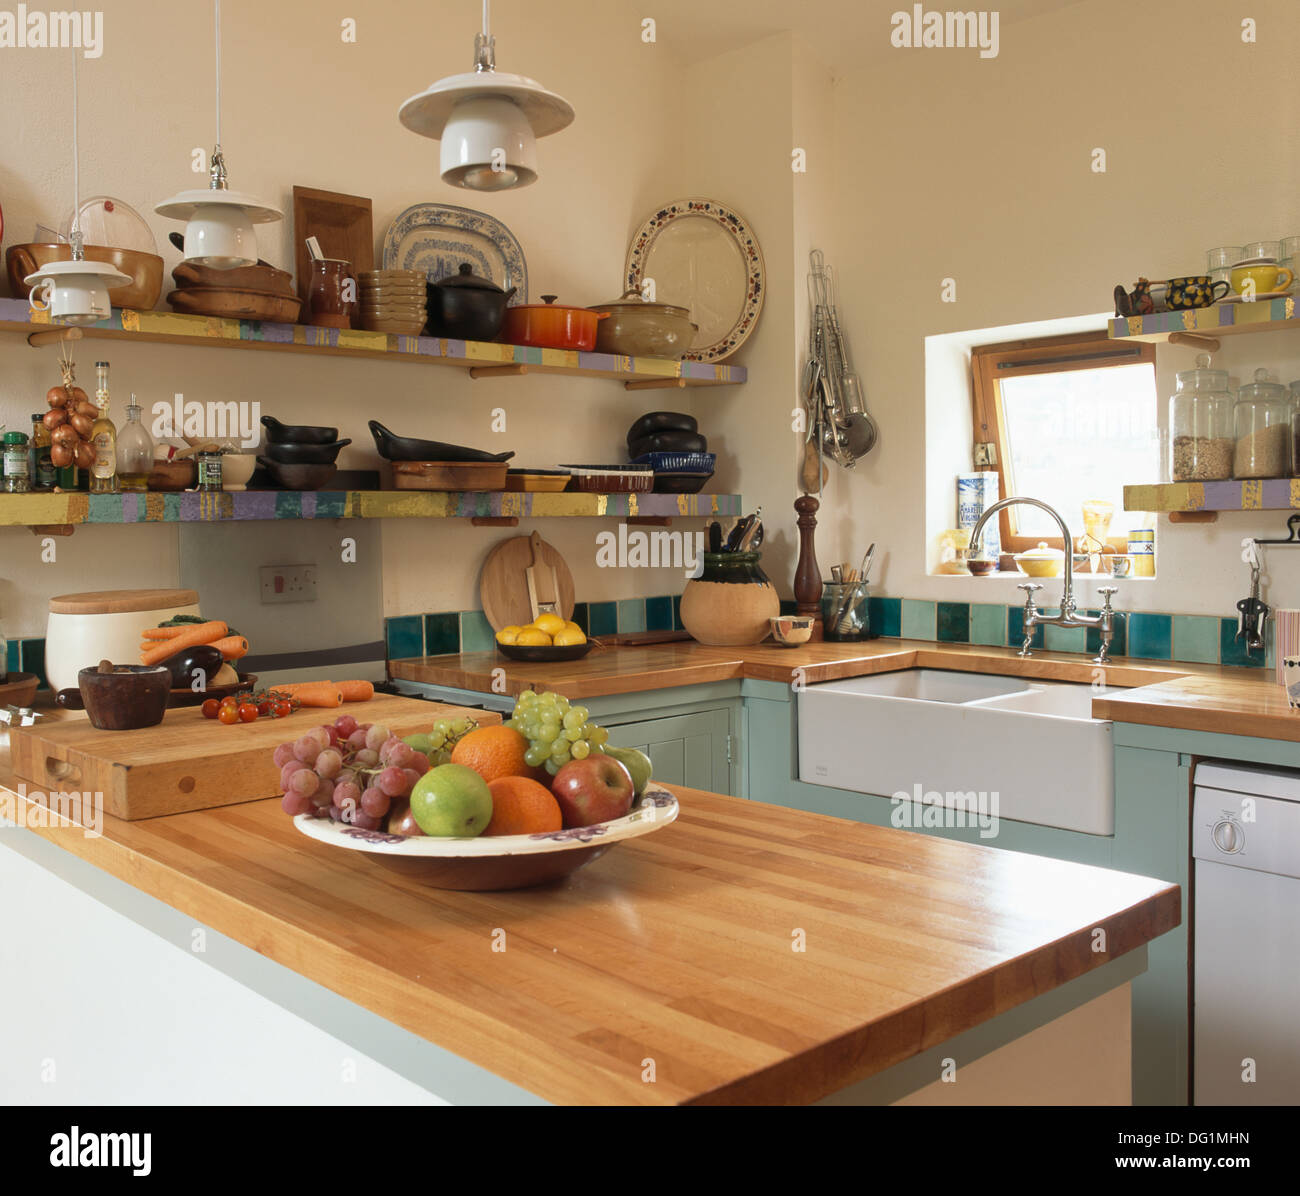 Cherry Wood Worktop In Small Country Kitchen With Belfast Sink And Stock Photo Royalty Free